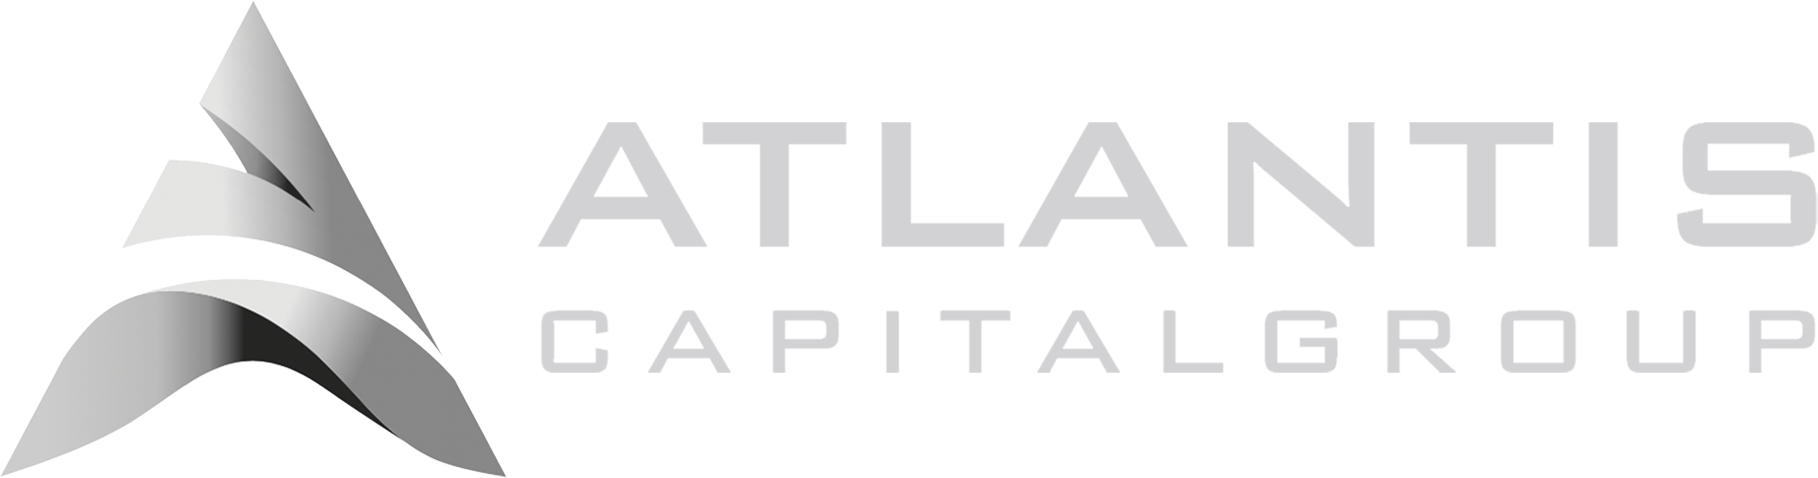 Atlantiscapital